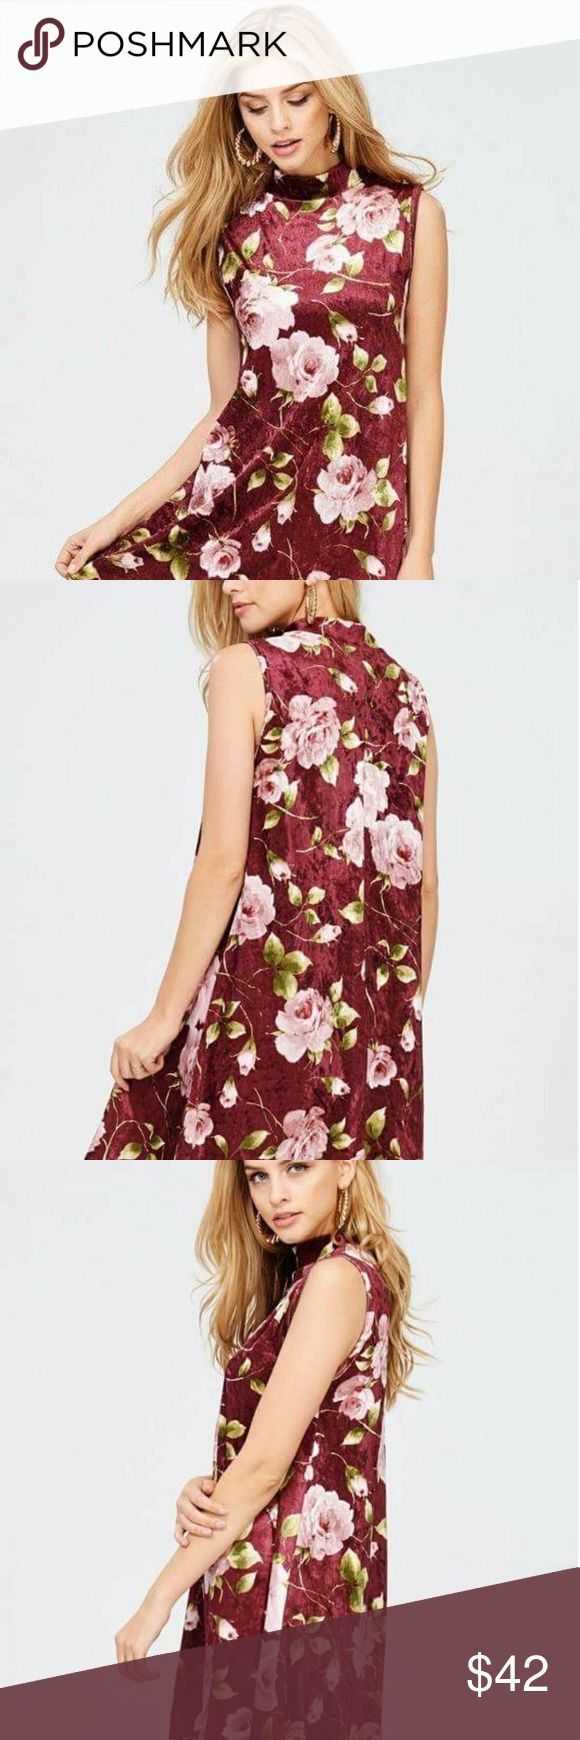 Red Lolly romantic midi dress This beautiful red velvet print dress with mock neck. Free flowing and super comfy. Red Lolly Dresses Midi